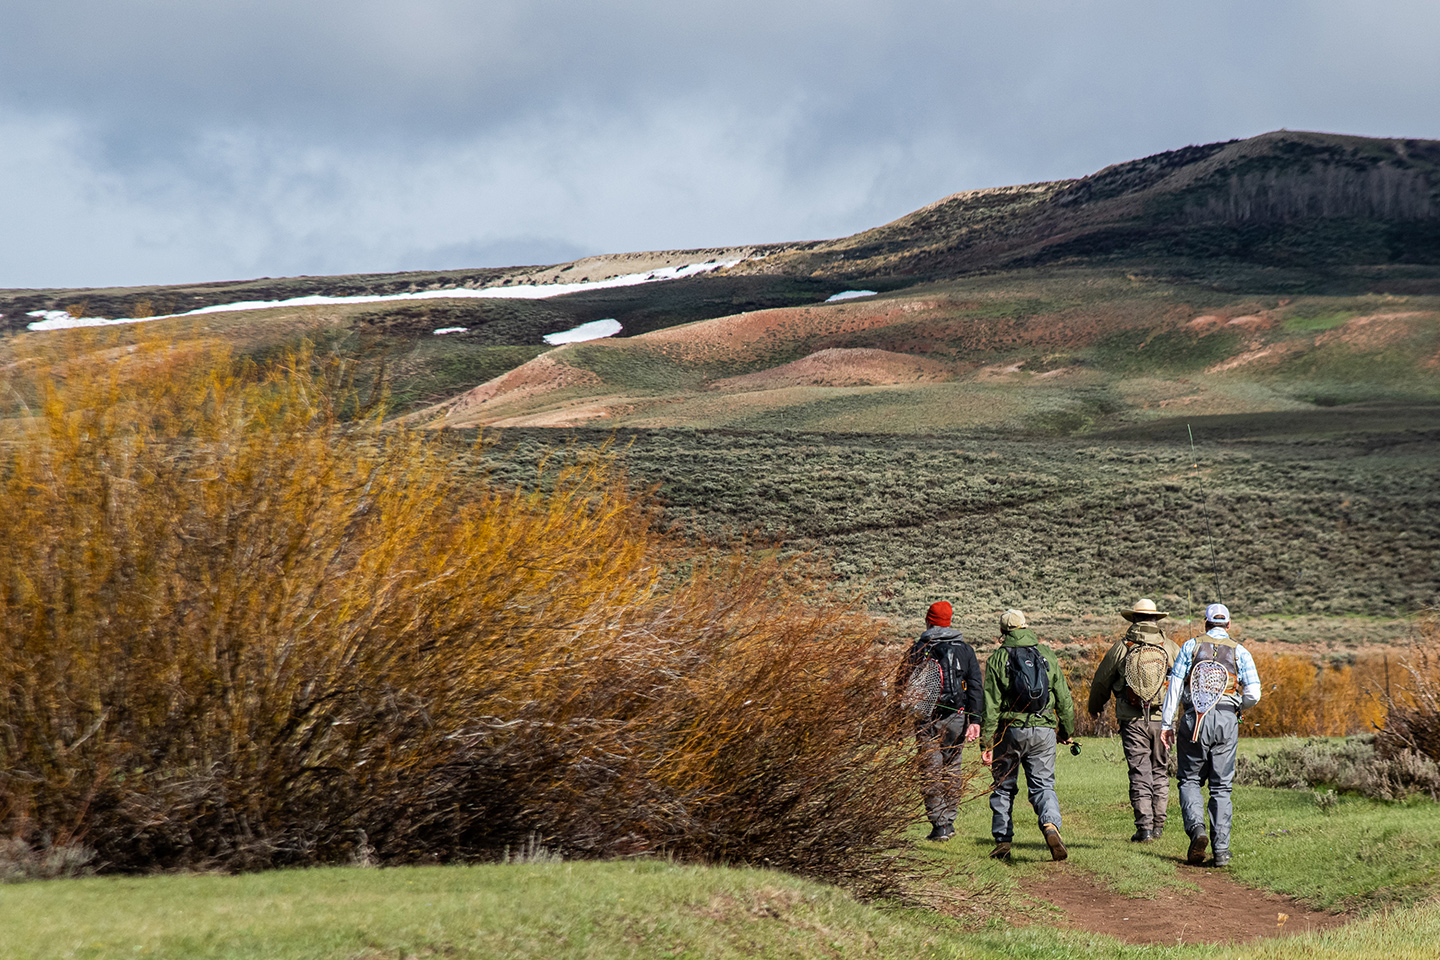 A group of fly fishers hiking out in remote countryside